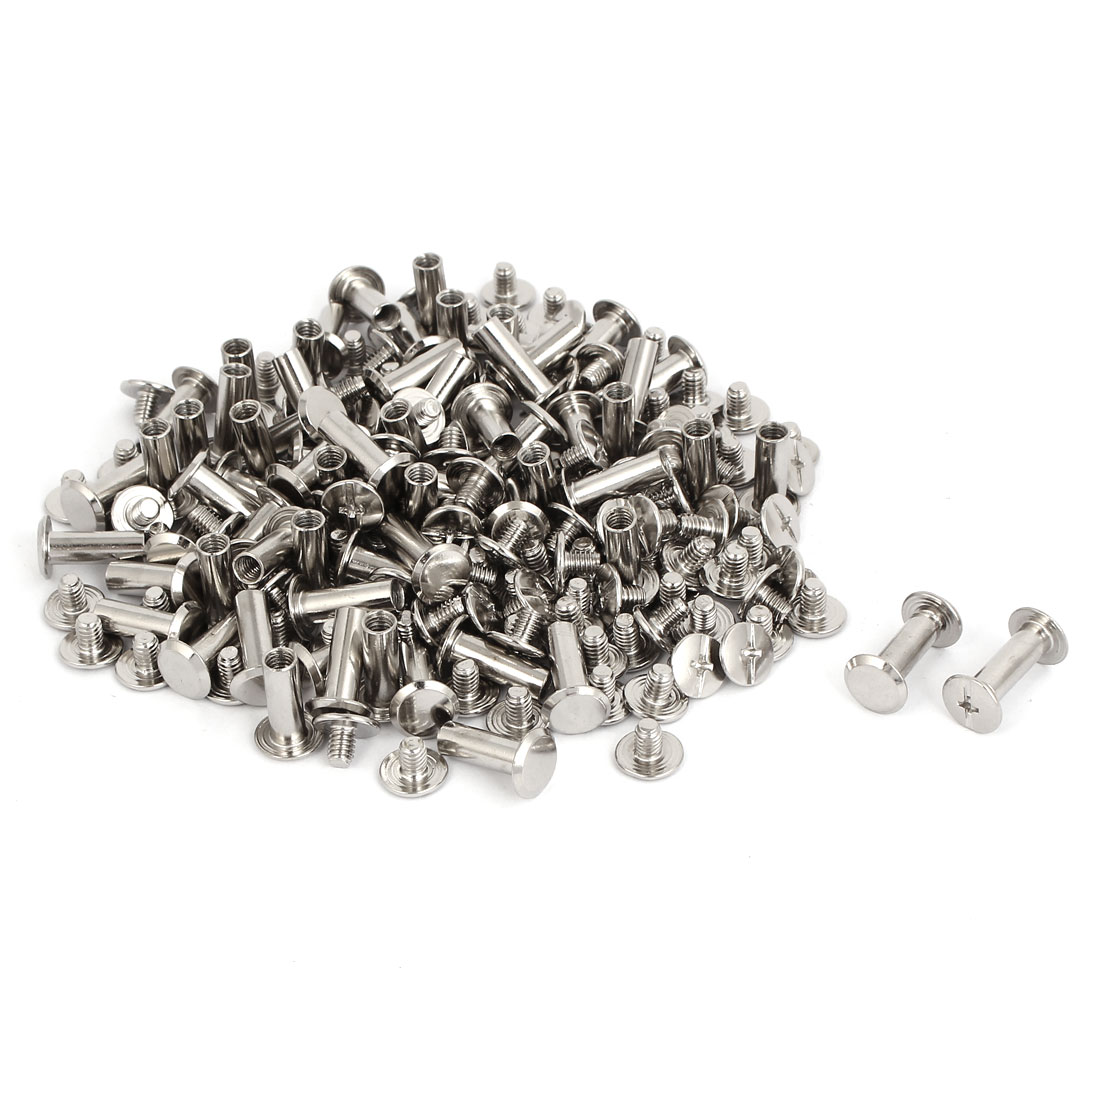 M5x13mm Leather Craft Belt Metal Nail Rivets Chicago Screws Binding Post 100pcs